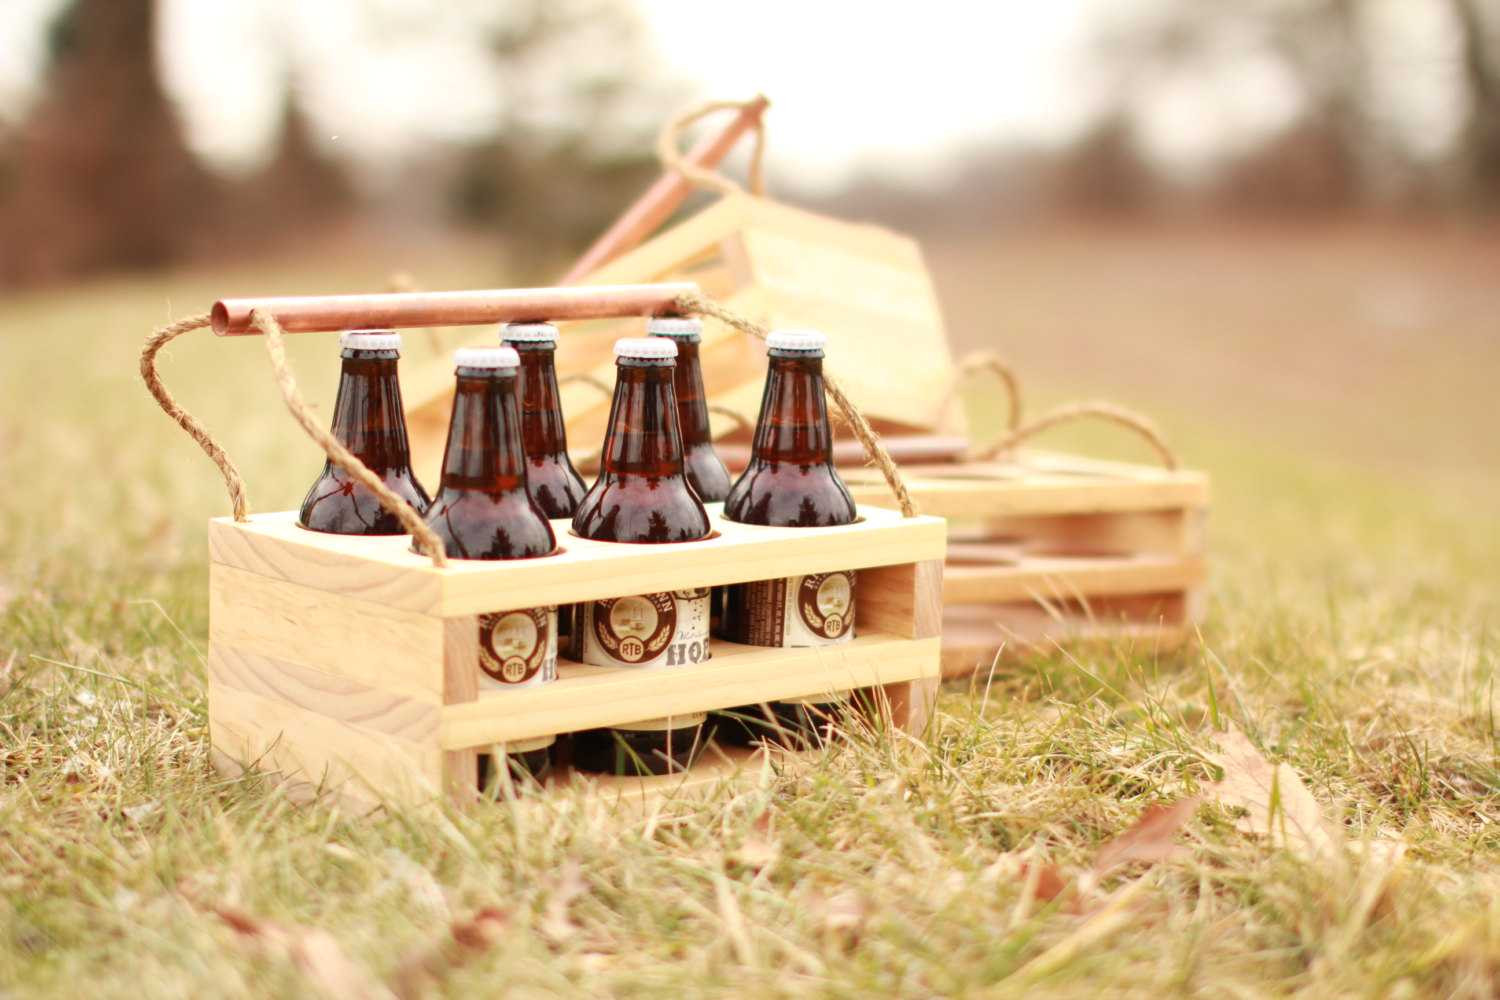 DIY Wood Projects  16 Handy DIY Projects From Old Wooden Crates Style